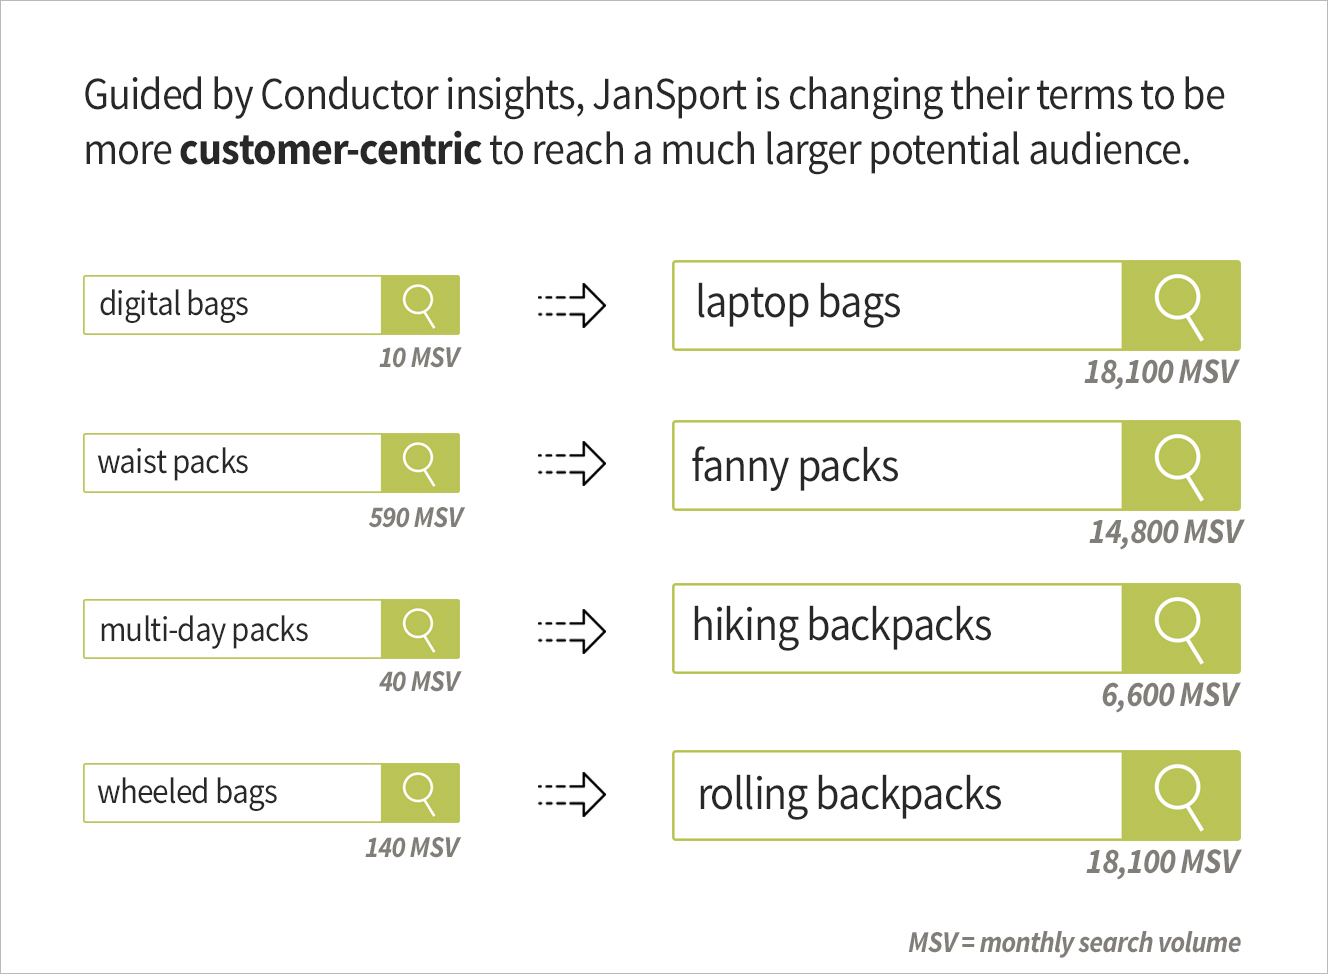 jansport-keyword-changes-msv-border